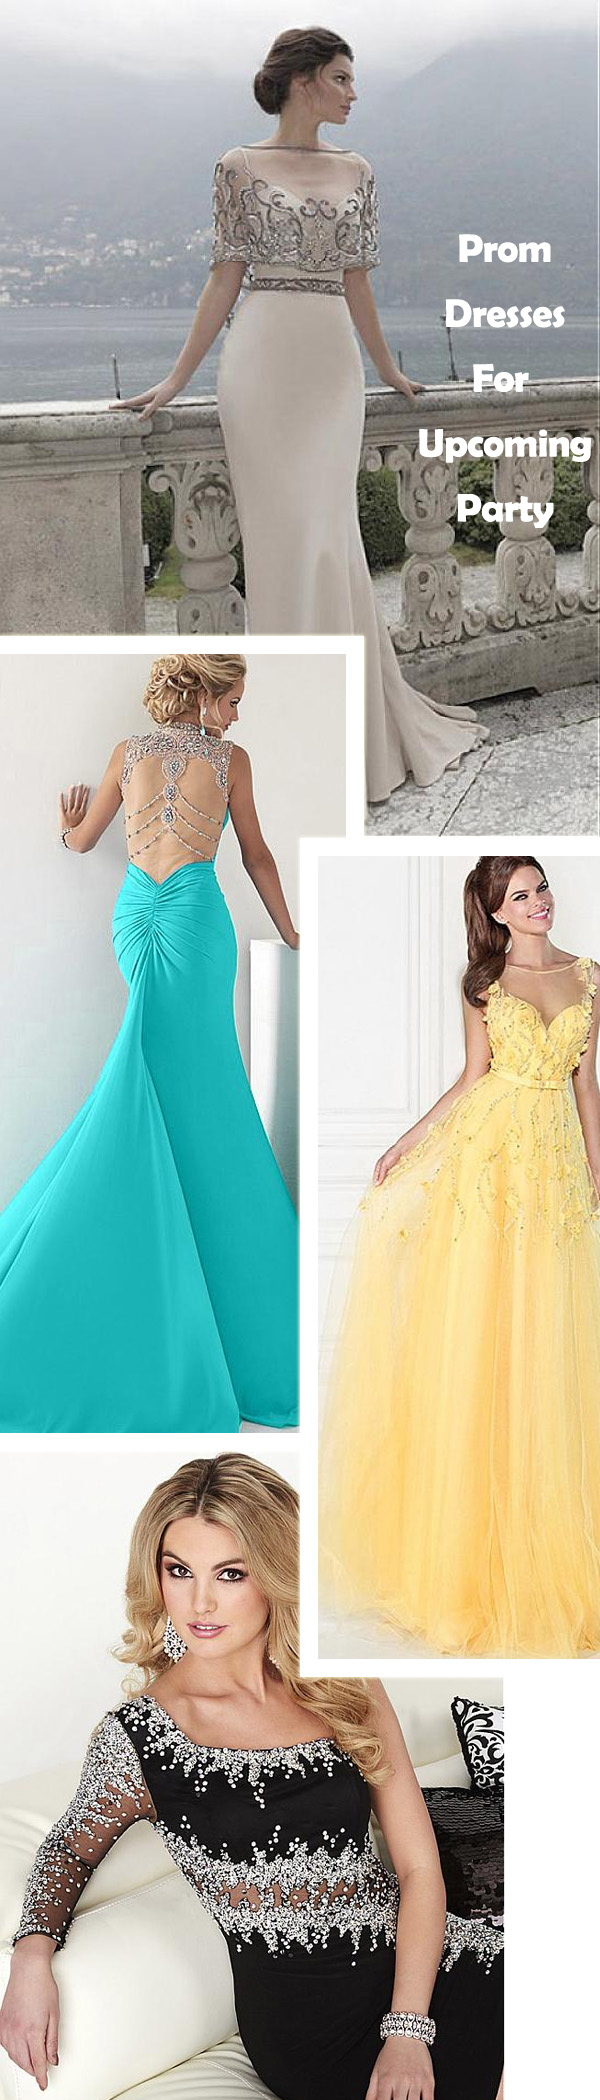 Do you get the desired prom dresses for the upcoming holiday parties ...